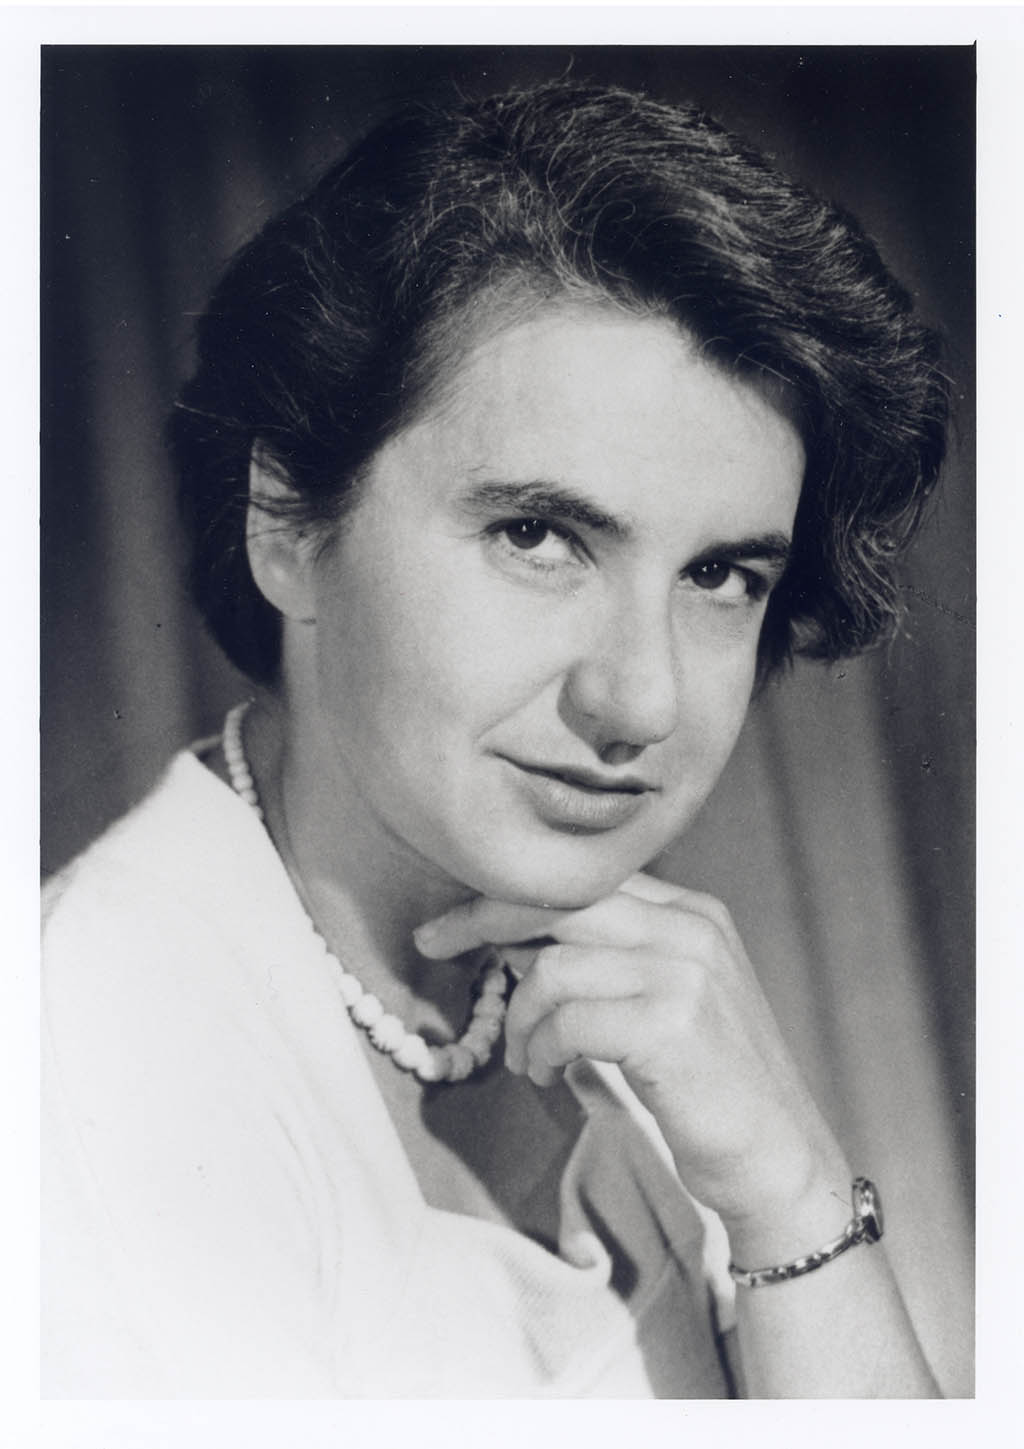 rosalind franklin Rosalind franklin is the dame of dna born in 1920, she used x-ray diffraction to take a picture of dna that changed biology photo 51, her picture of dna, was shown to james watson and francis crick without her knowledge by her colleague maurice wilkins who thought she was just a lab assistant when she was heading up her own projects.